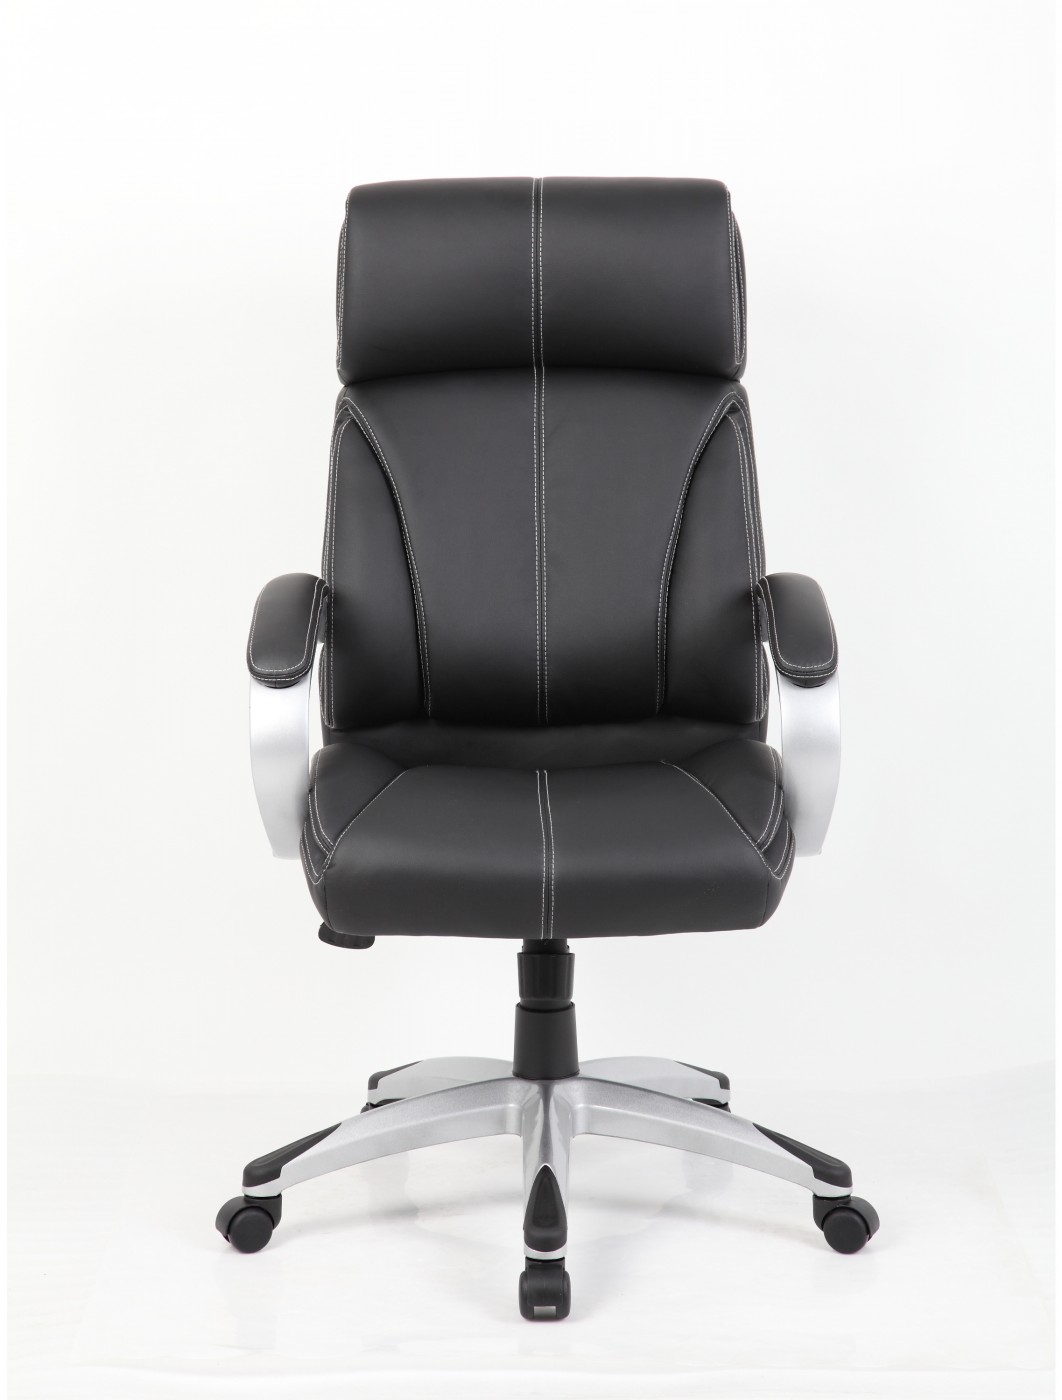 Eliza Tinsley Cloud Leather Managers Chair BCL/C335/BK